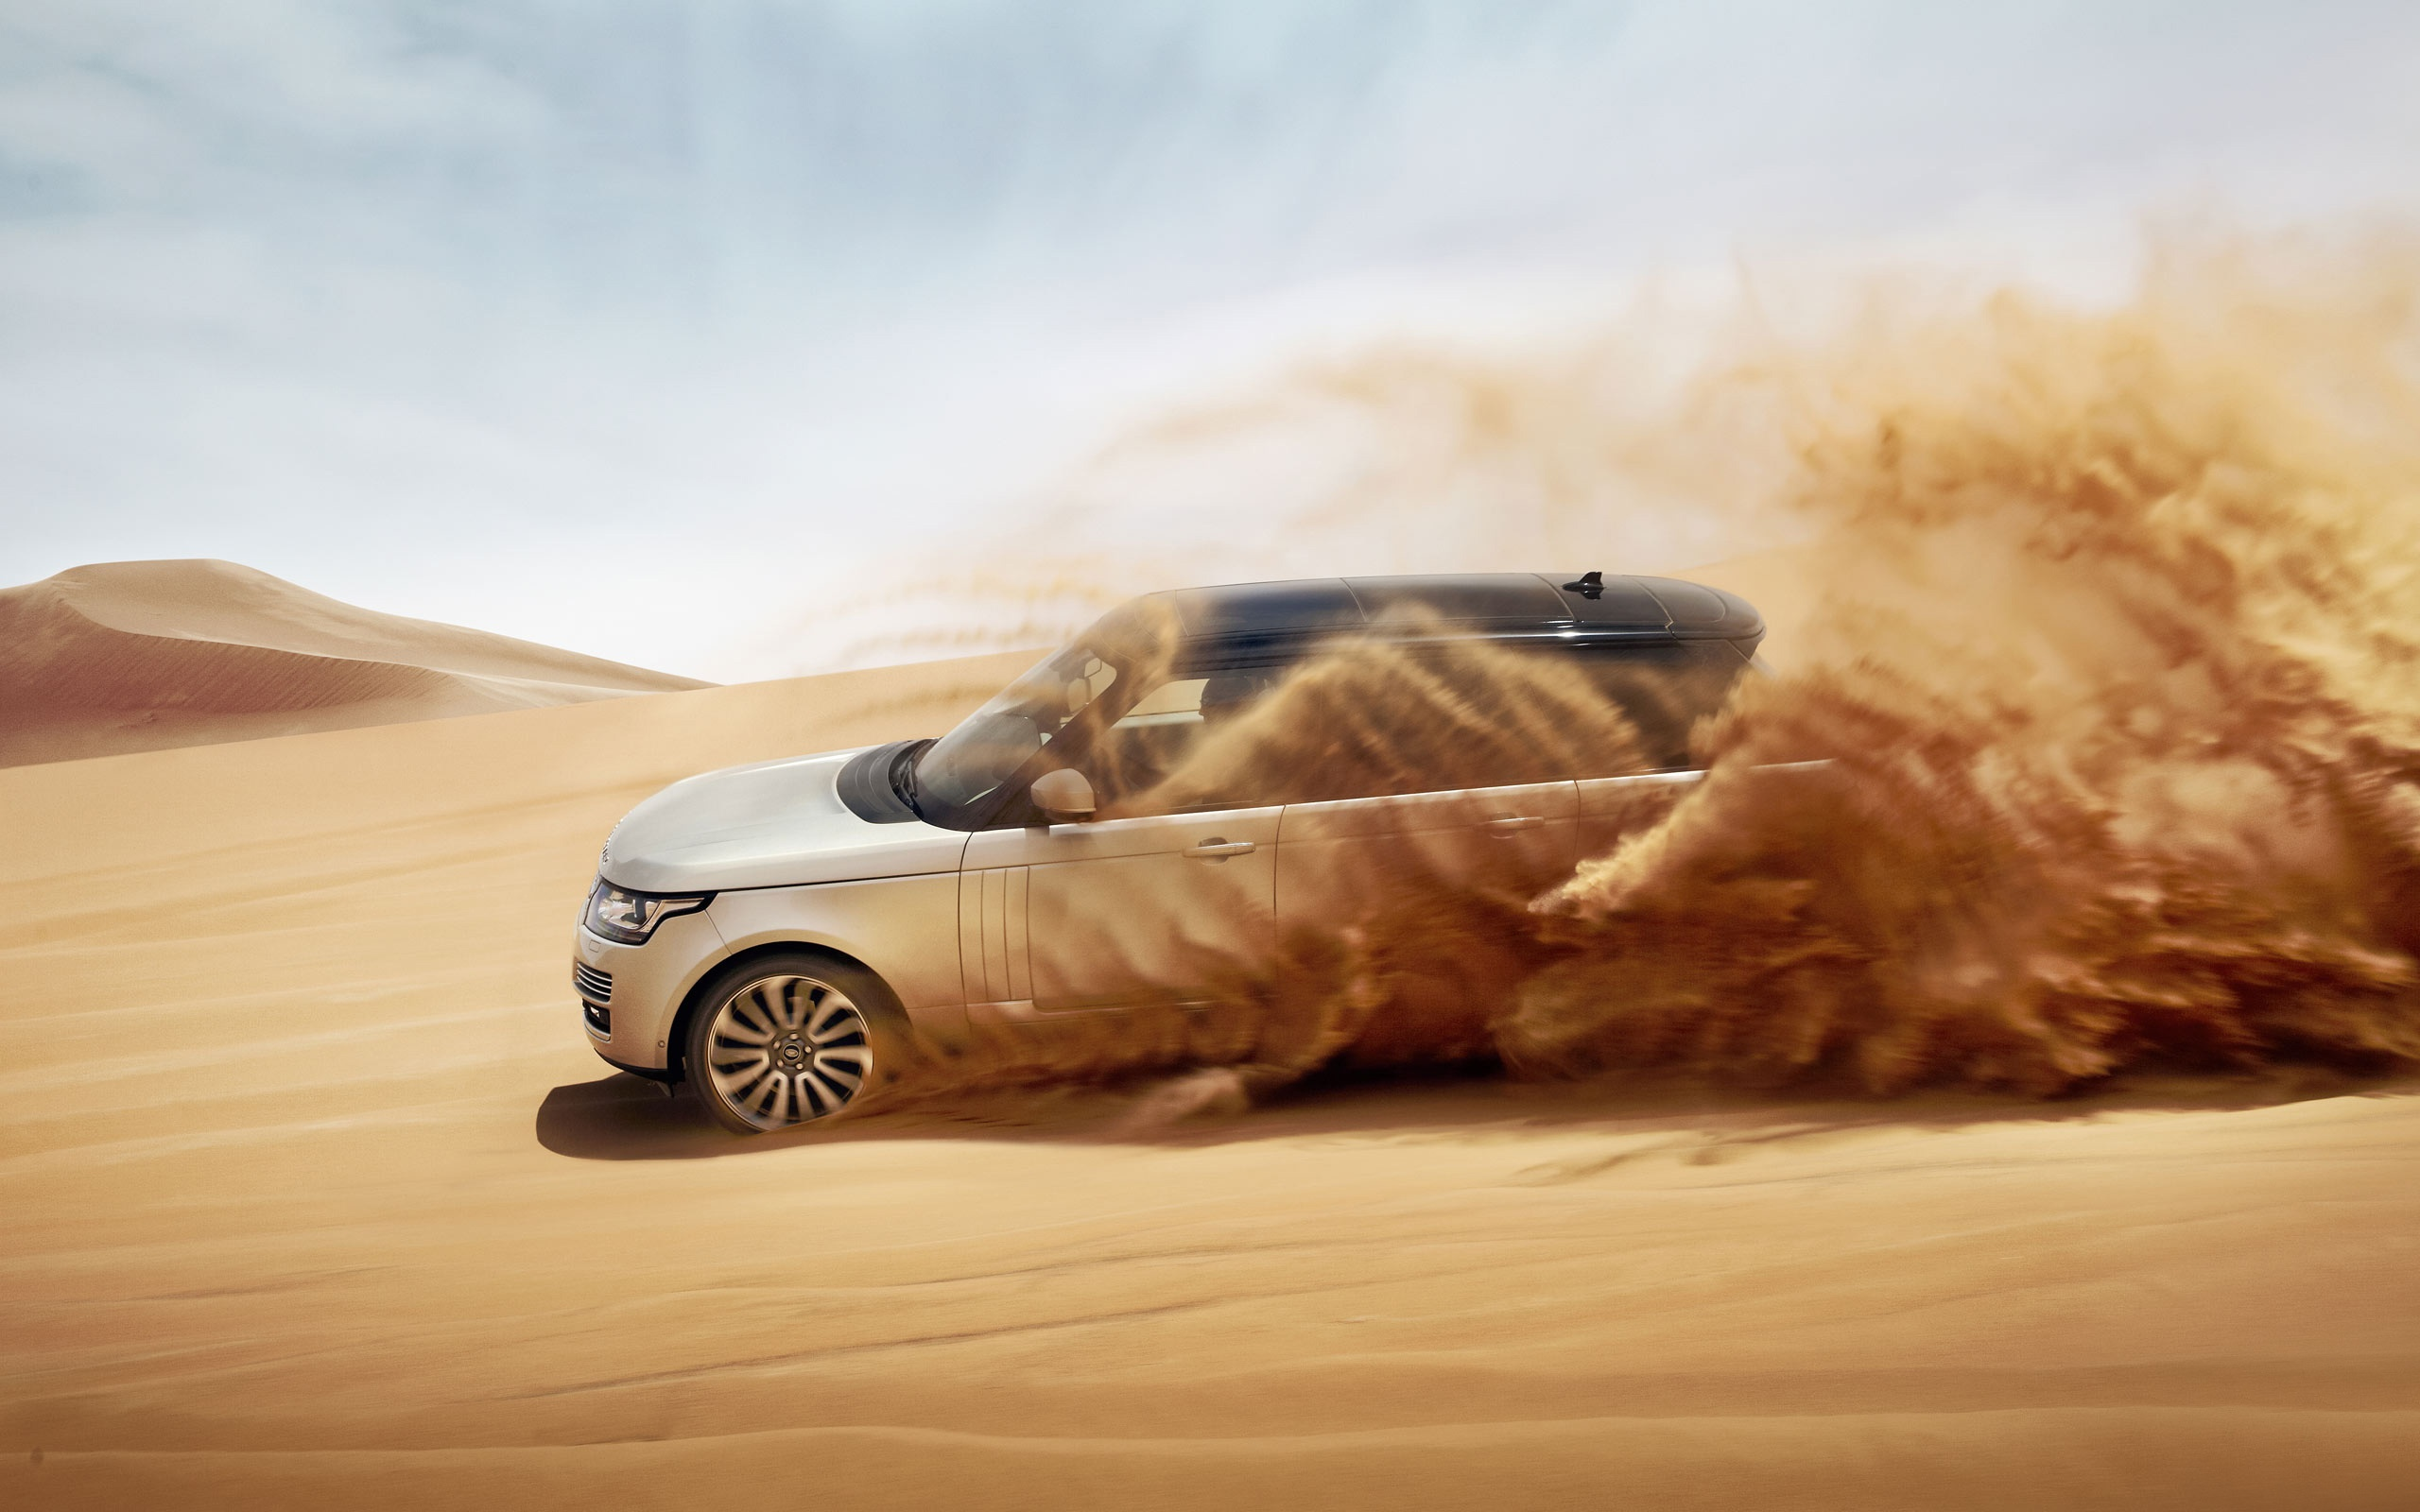 2560x1600 - Range Rover Wallpapers 23